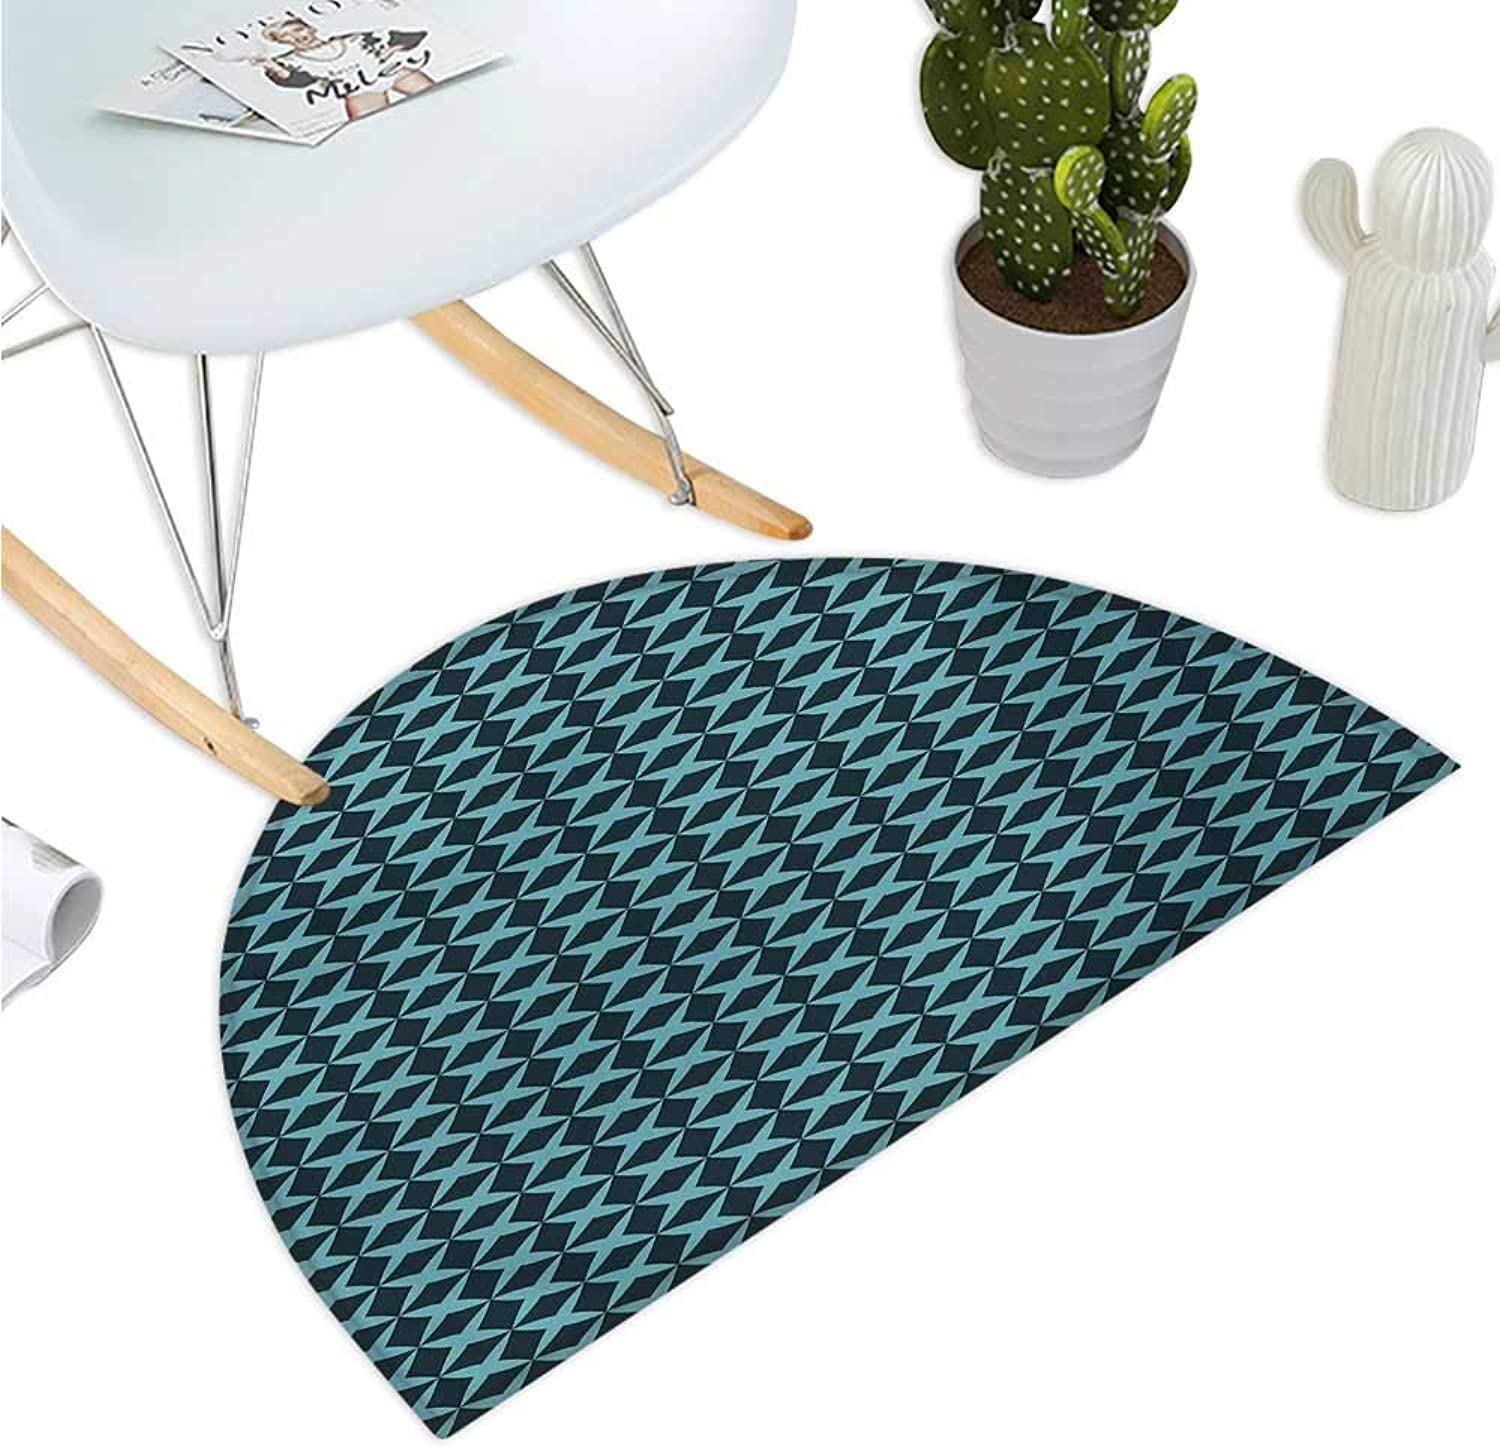 bluee Semicircular Cushion Wire Inspired Floral Like Image Thick Crossed Horizontal Lines Image Halfmoon doormats H 47.2  xD 70.8  Slate bluee and Pale bluee